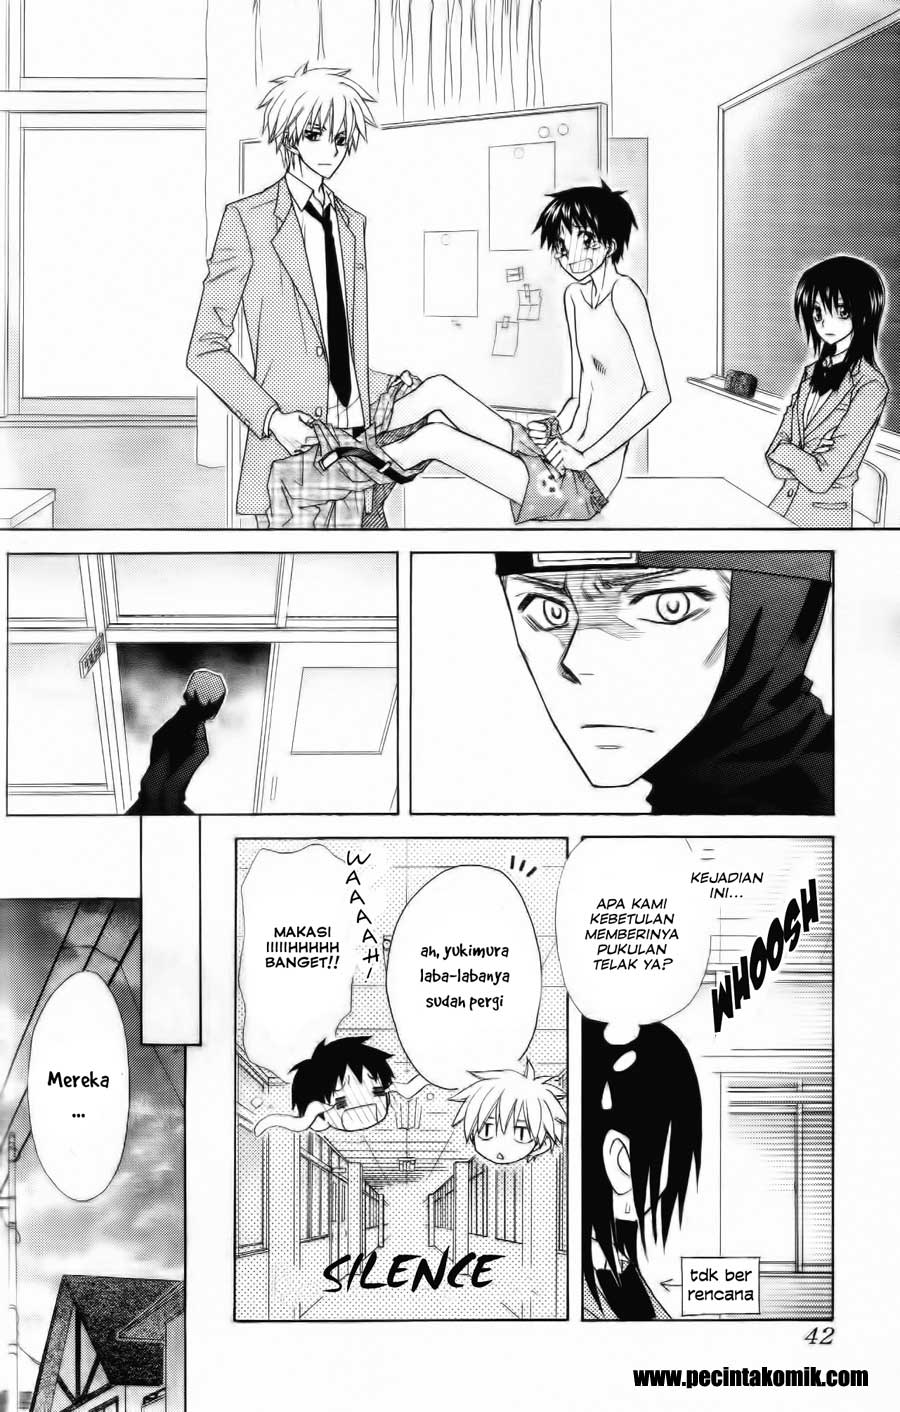 Kaichou Wa Maid Sama Chapter 53-22